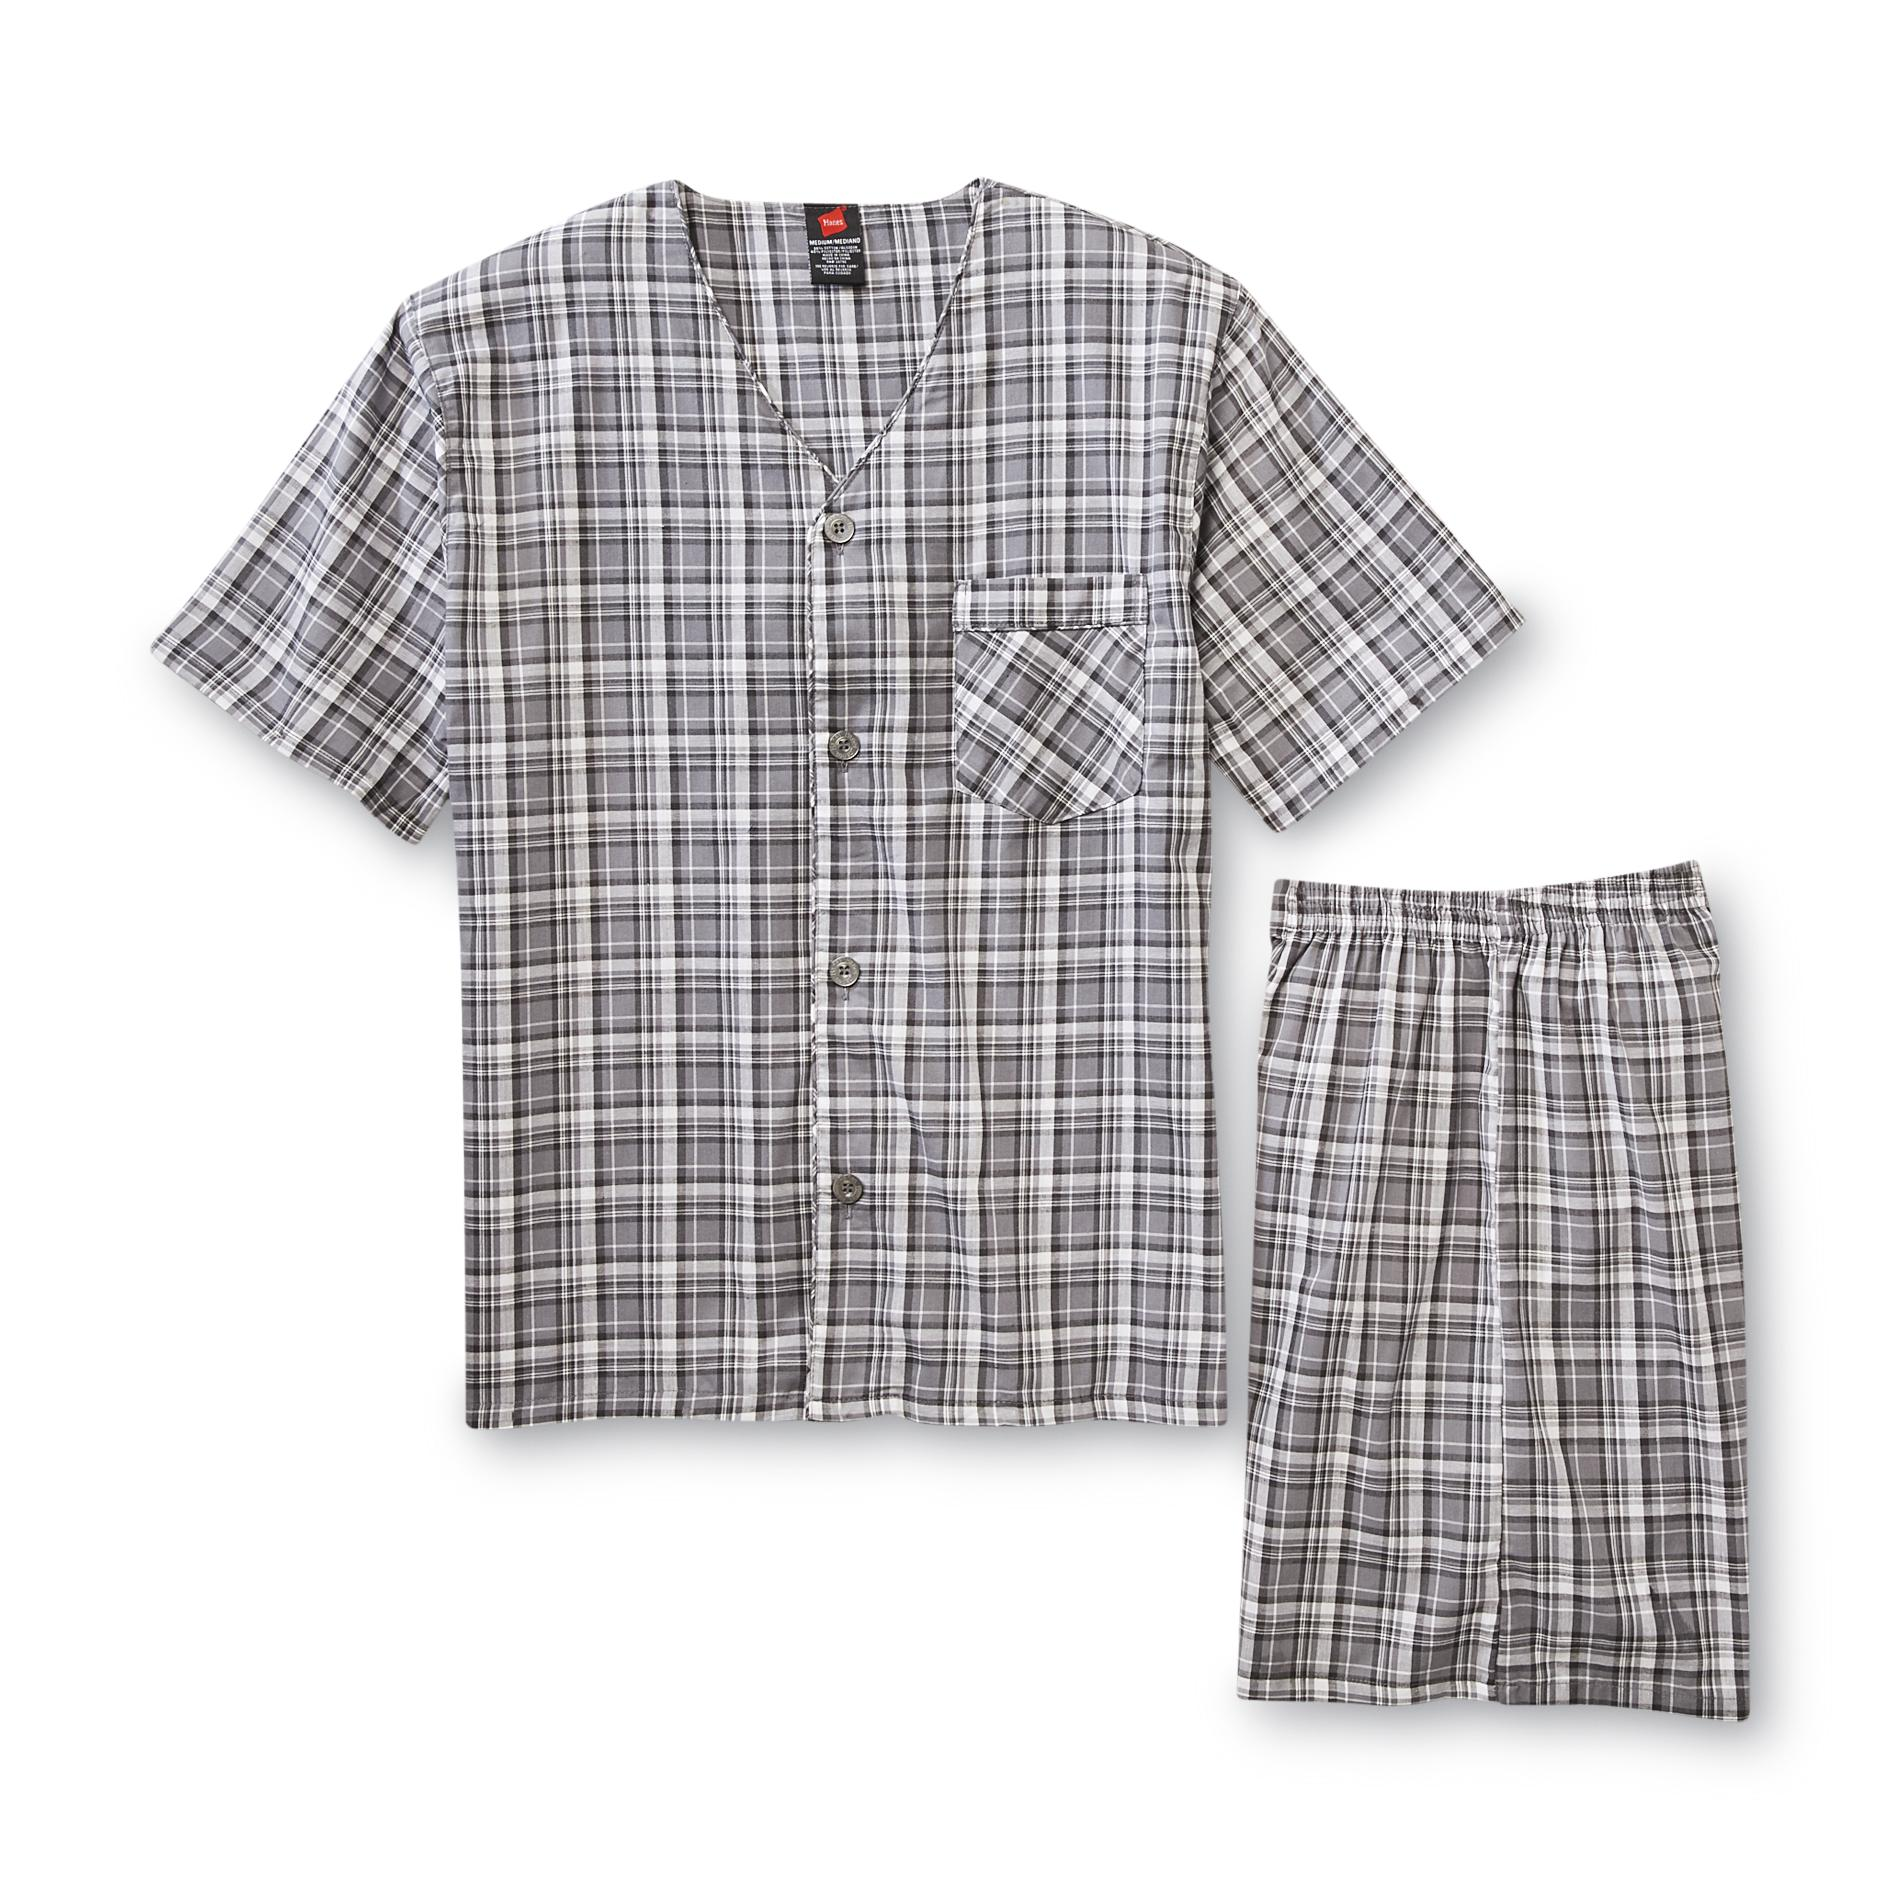 Hanes Men's Pajama Shirt & Pants - Plaid